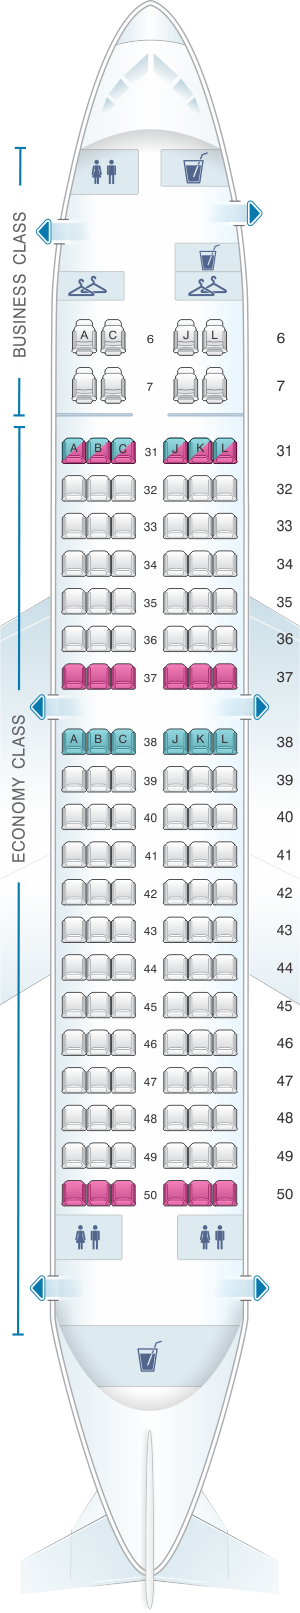 Seat map for China Eastern Airlines Boeing B737 700 128PAX